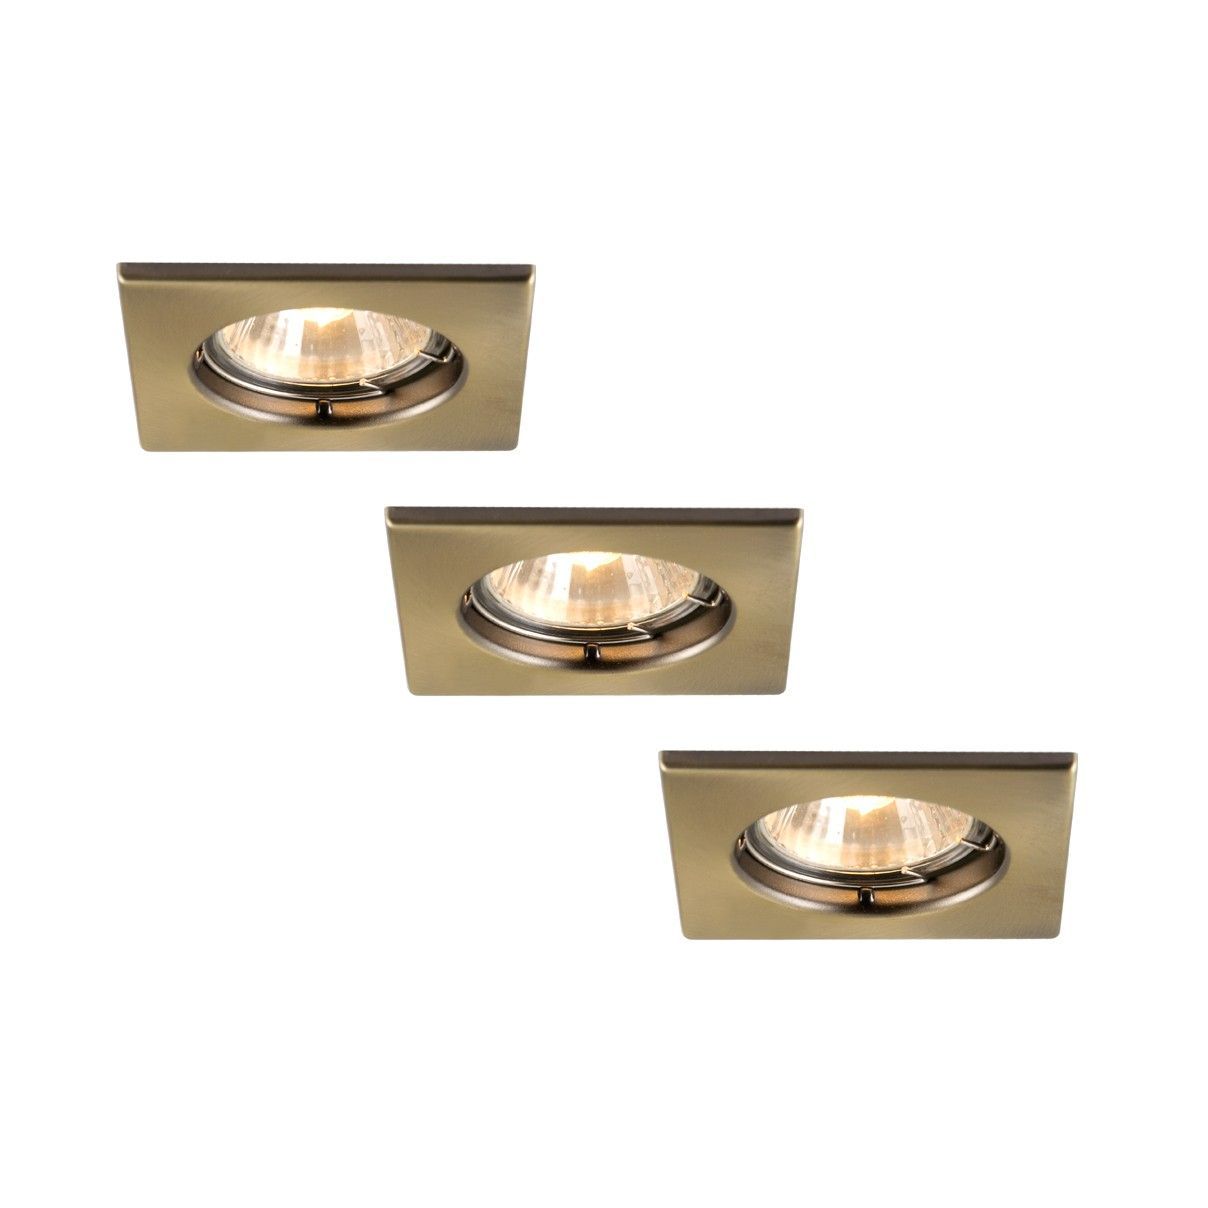 Brass Square Fixed Recessed Downlights Recessed Lighting Downlights Retrofit Recessed Lighting